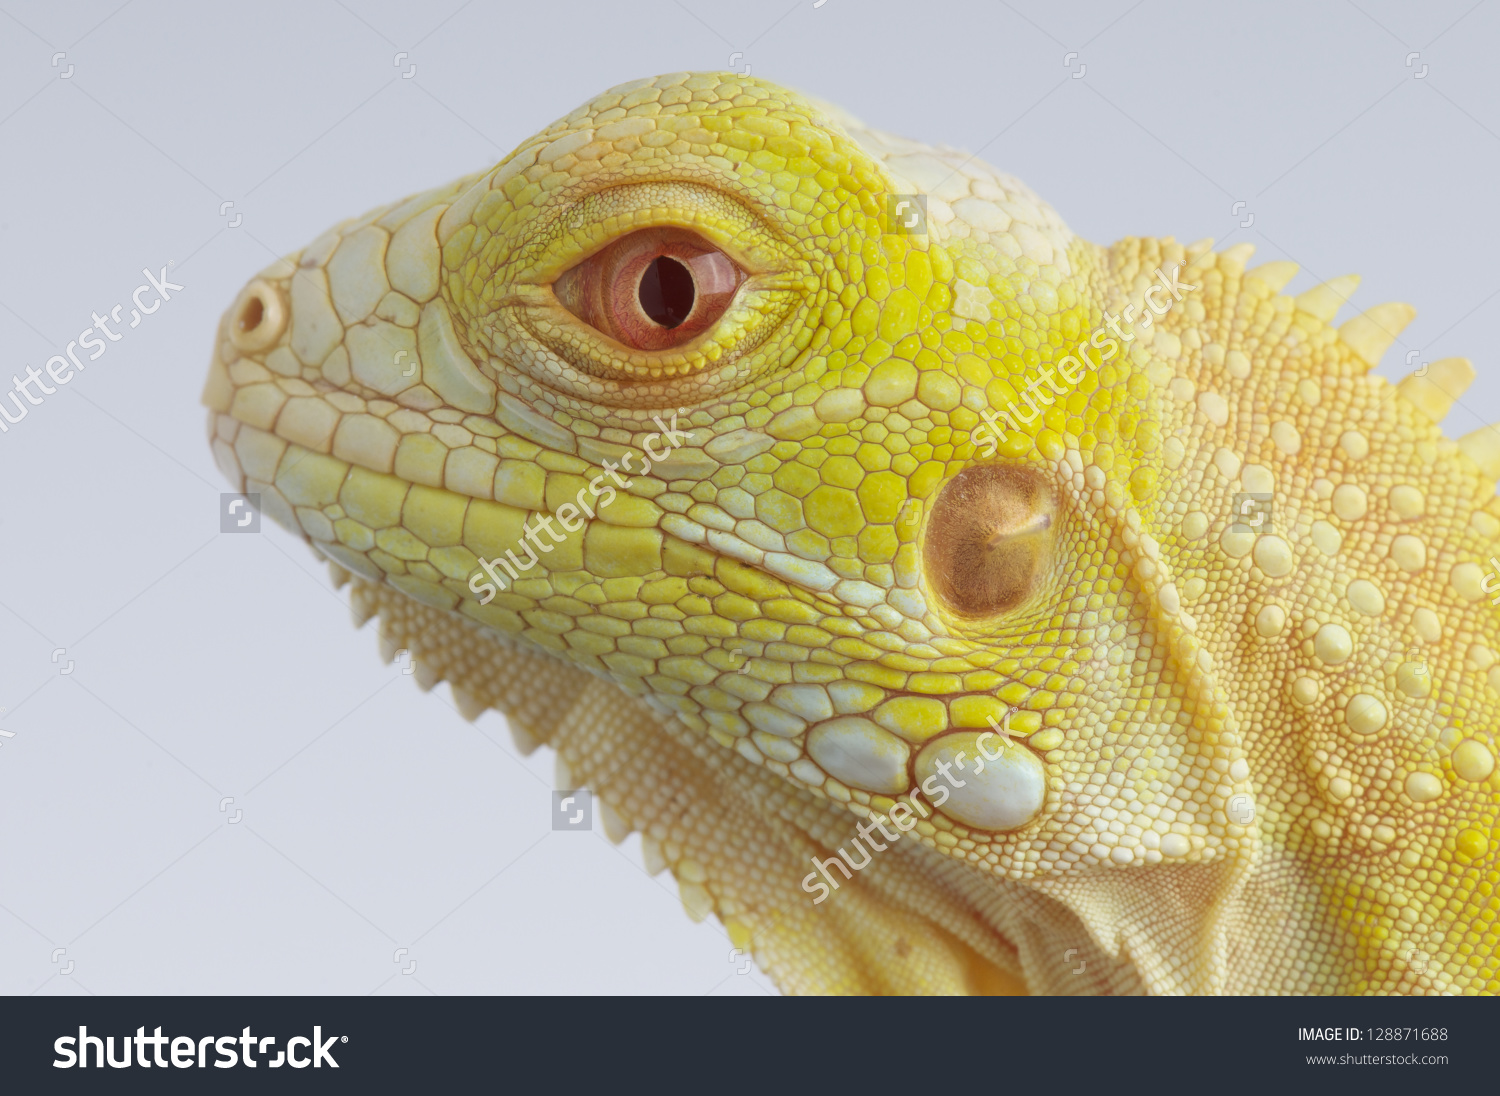 Albino Iguana Stock Photo 128871688.